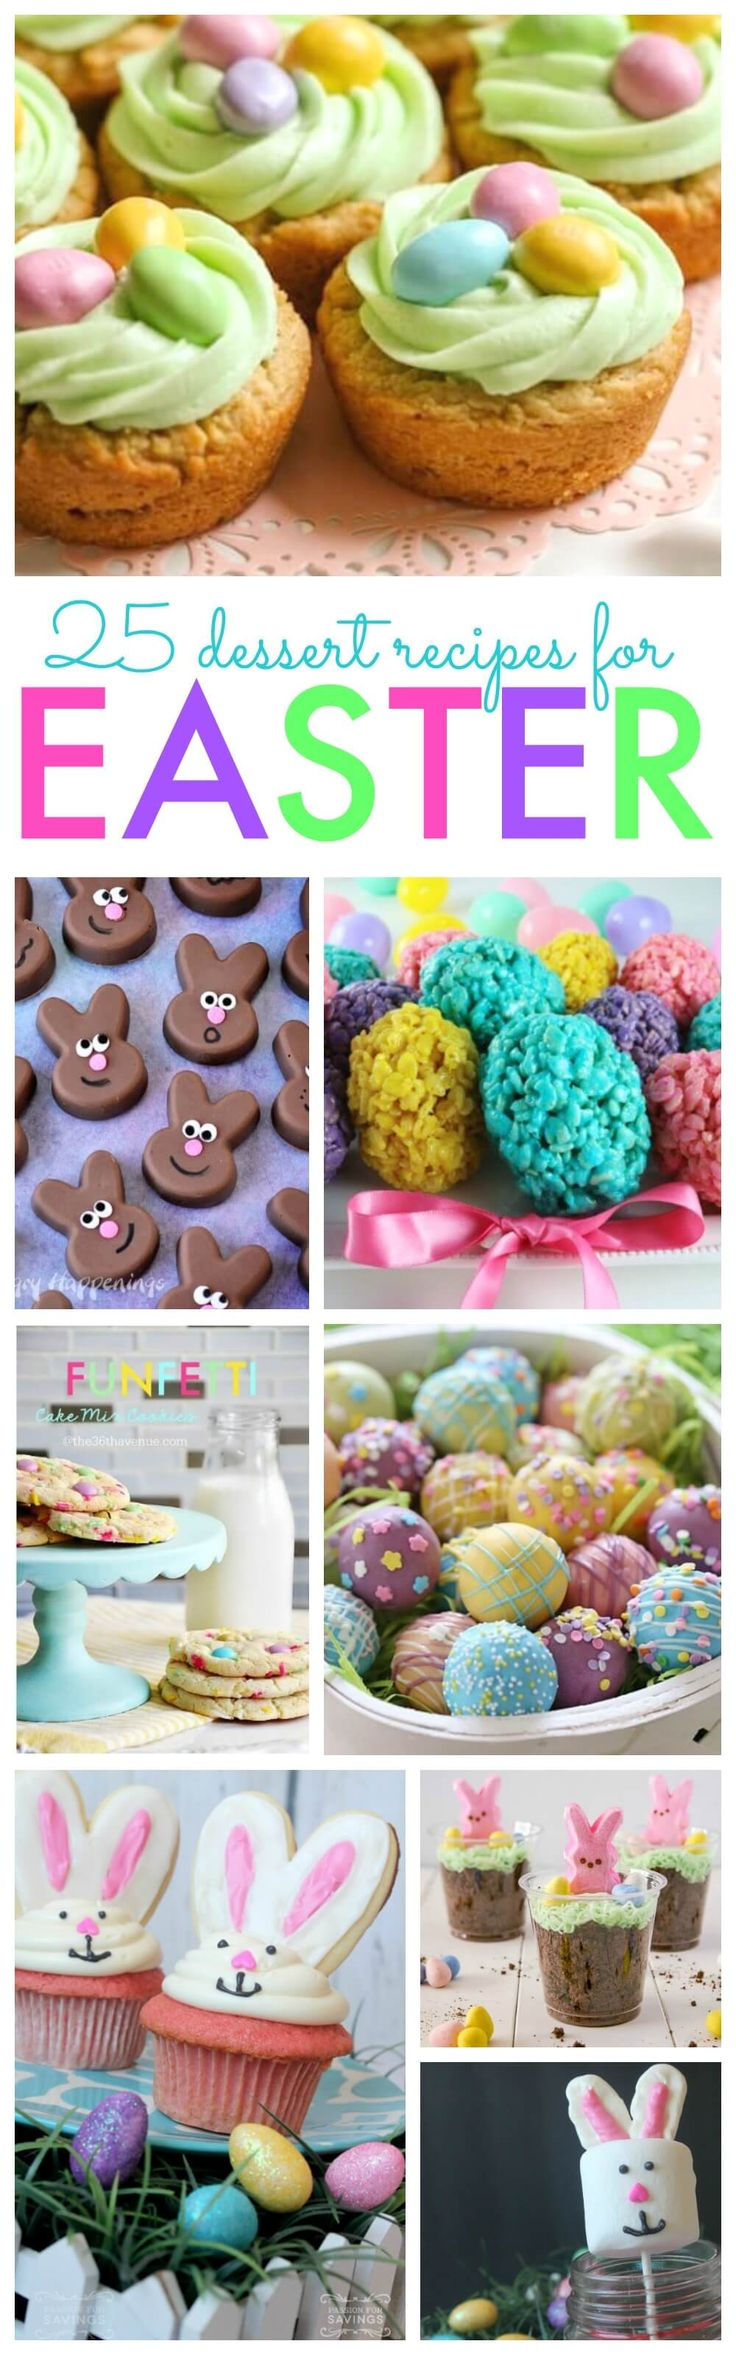 25 Easter Dessert Recipes that you can make for Easter Brunch, Lunch or an Easter Party. These Ideas are perfect Easter Ideas for Kids to have some fun celebrating Easter with Kids and Family.